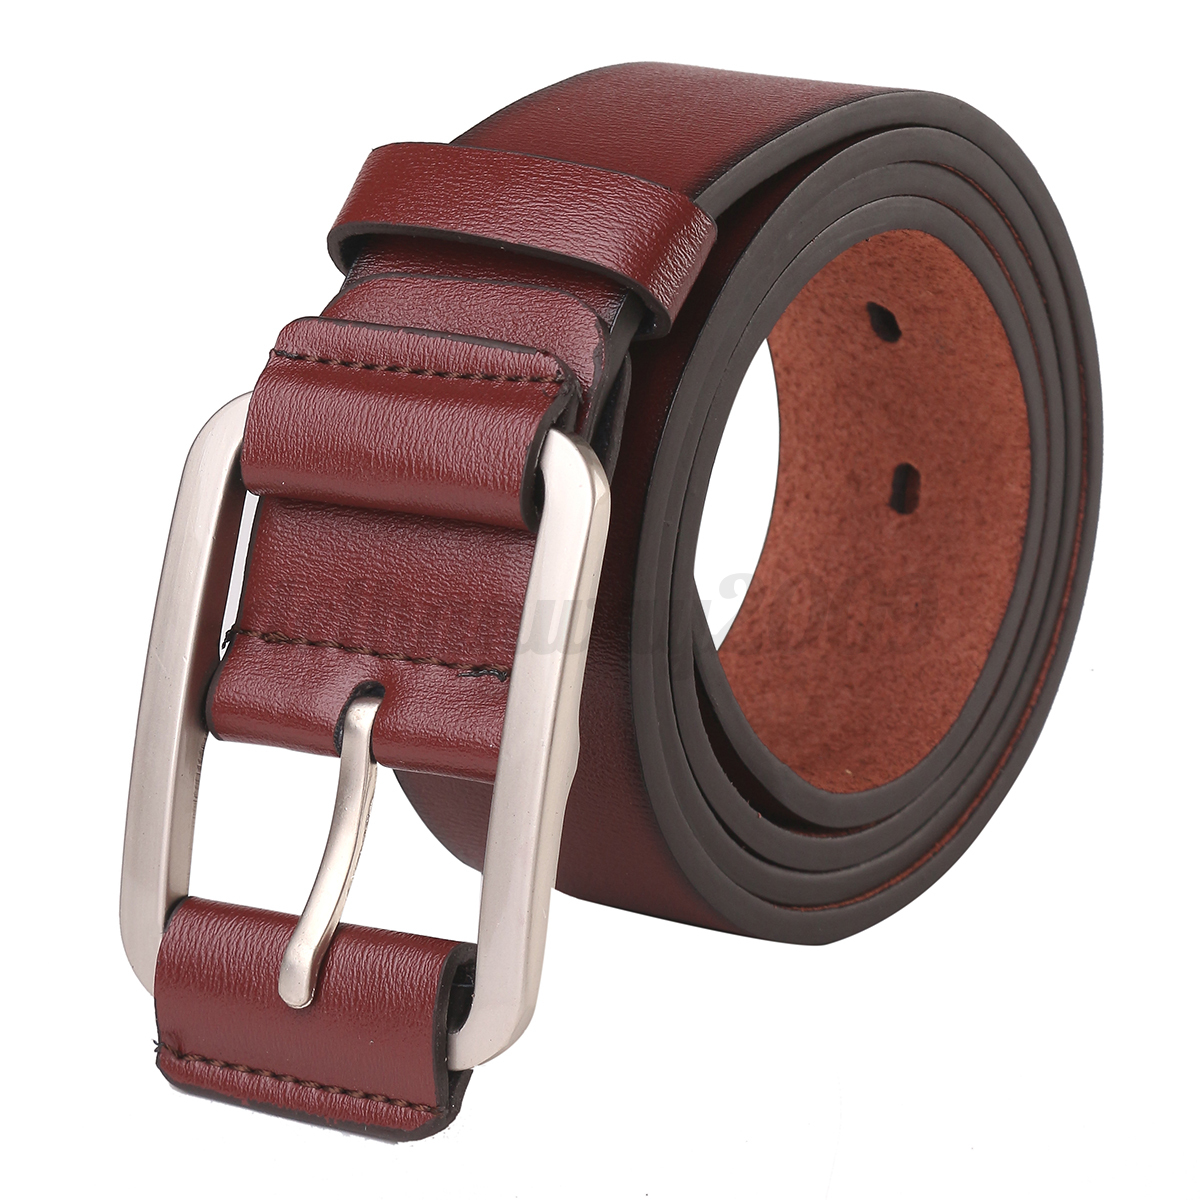 Adjustable-Fashion-Casual-Leather-Belt-Leash-Waistband-Waist-Strap-Pin-Buckle